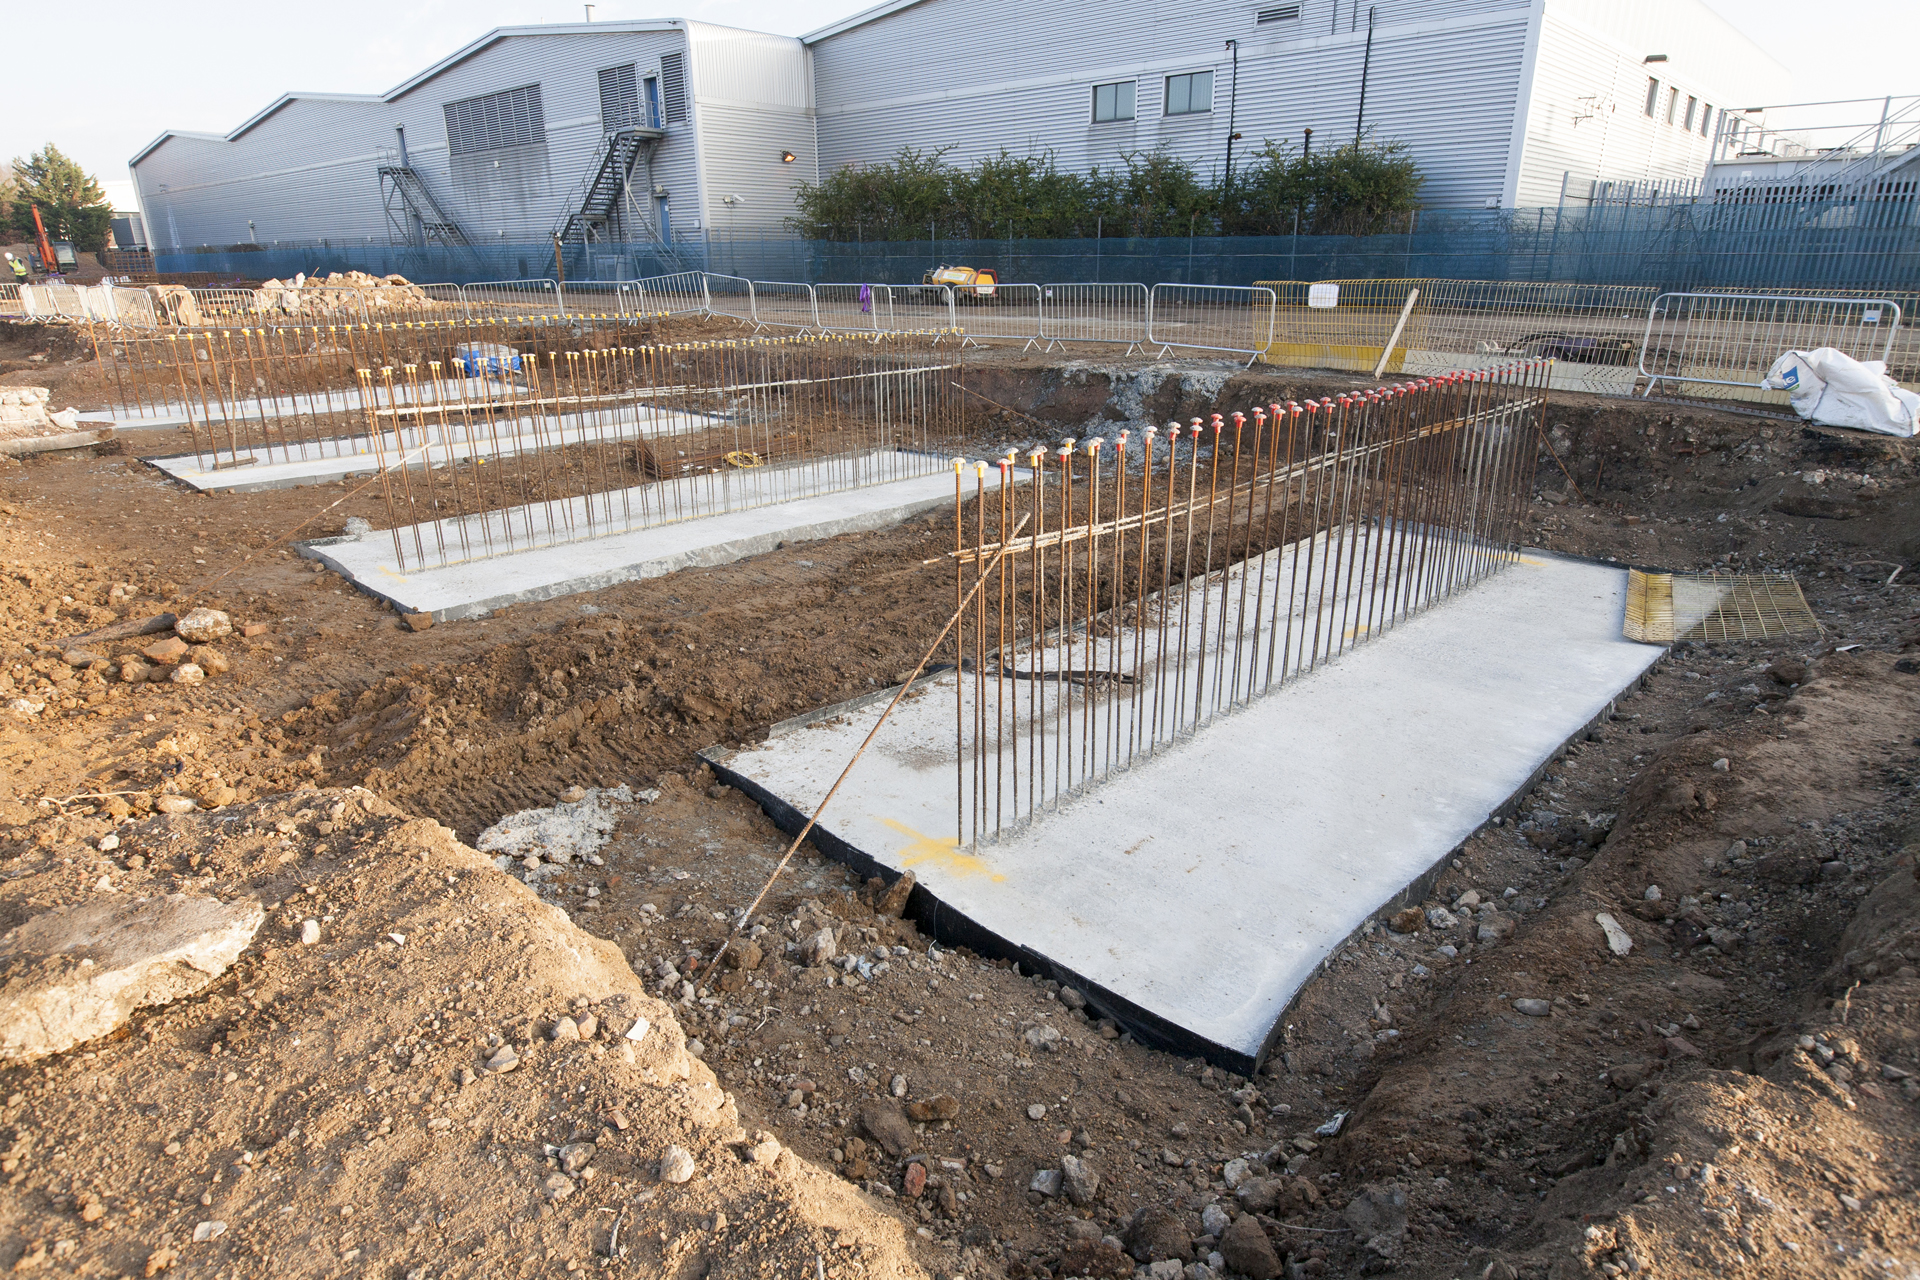 Heathrow Construction Groundworks